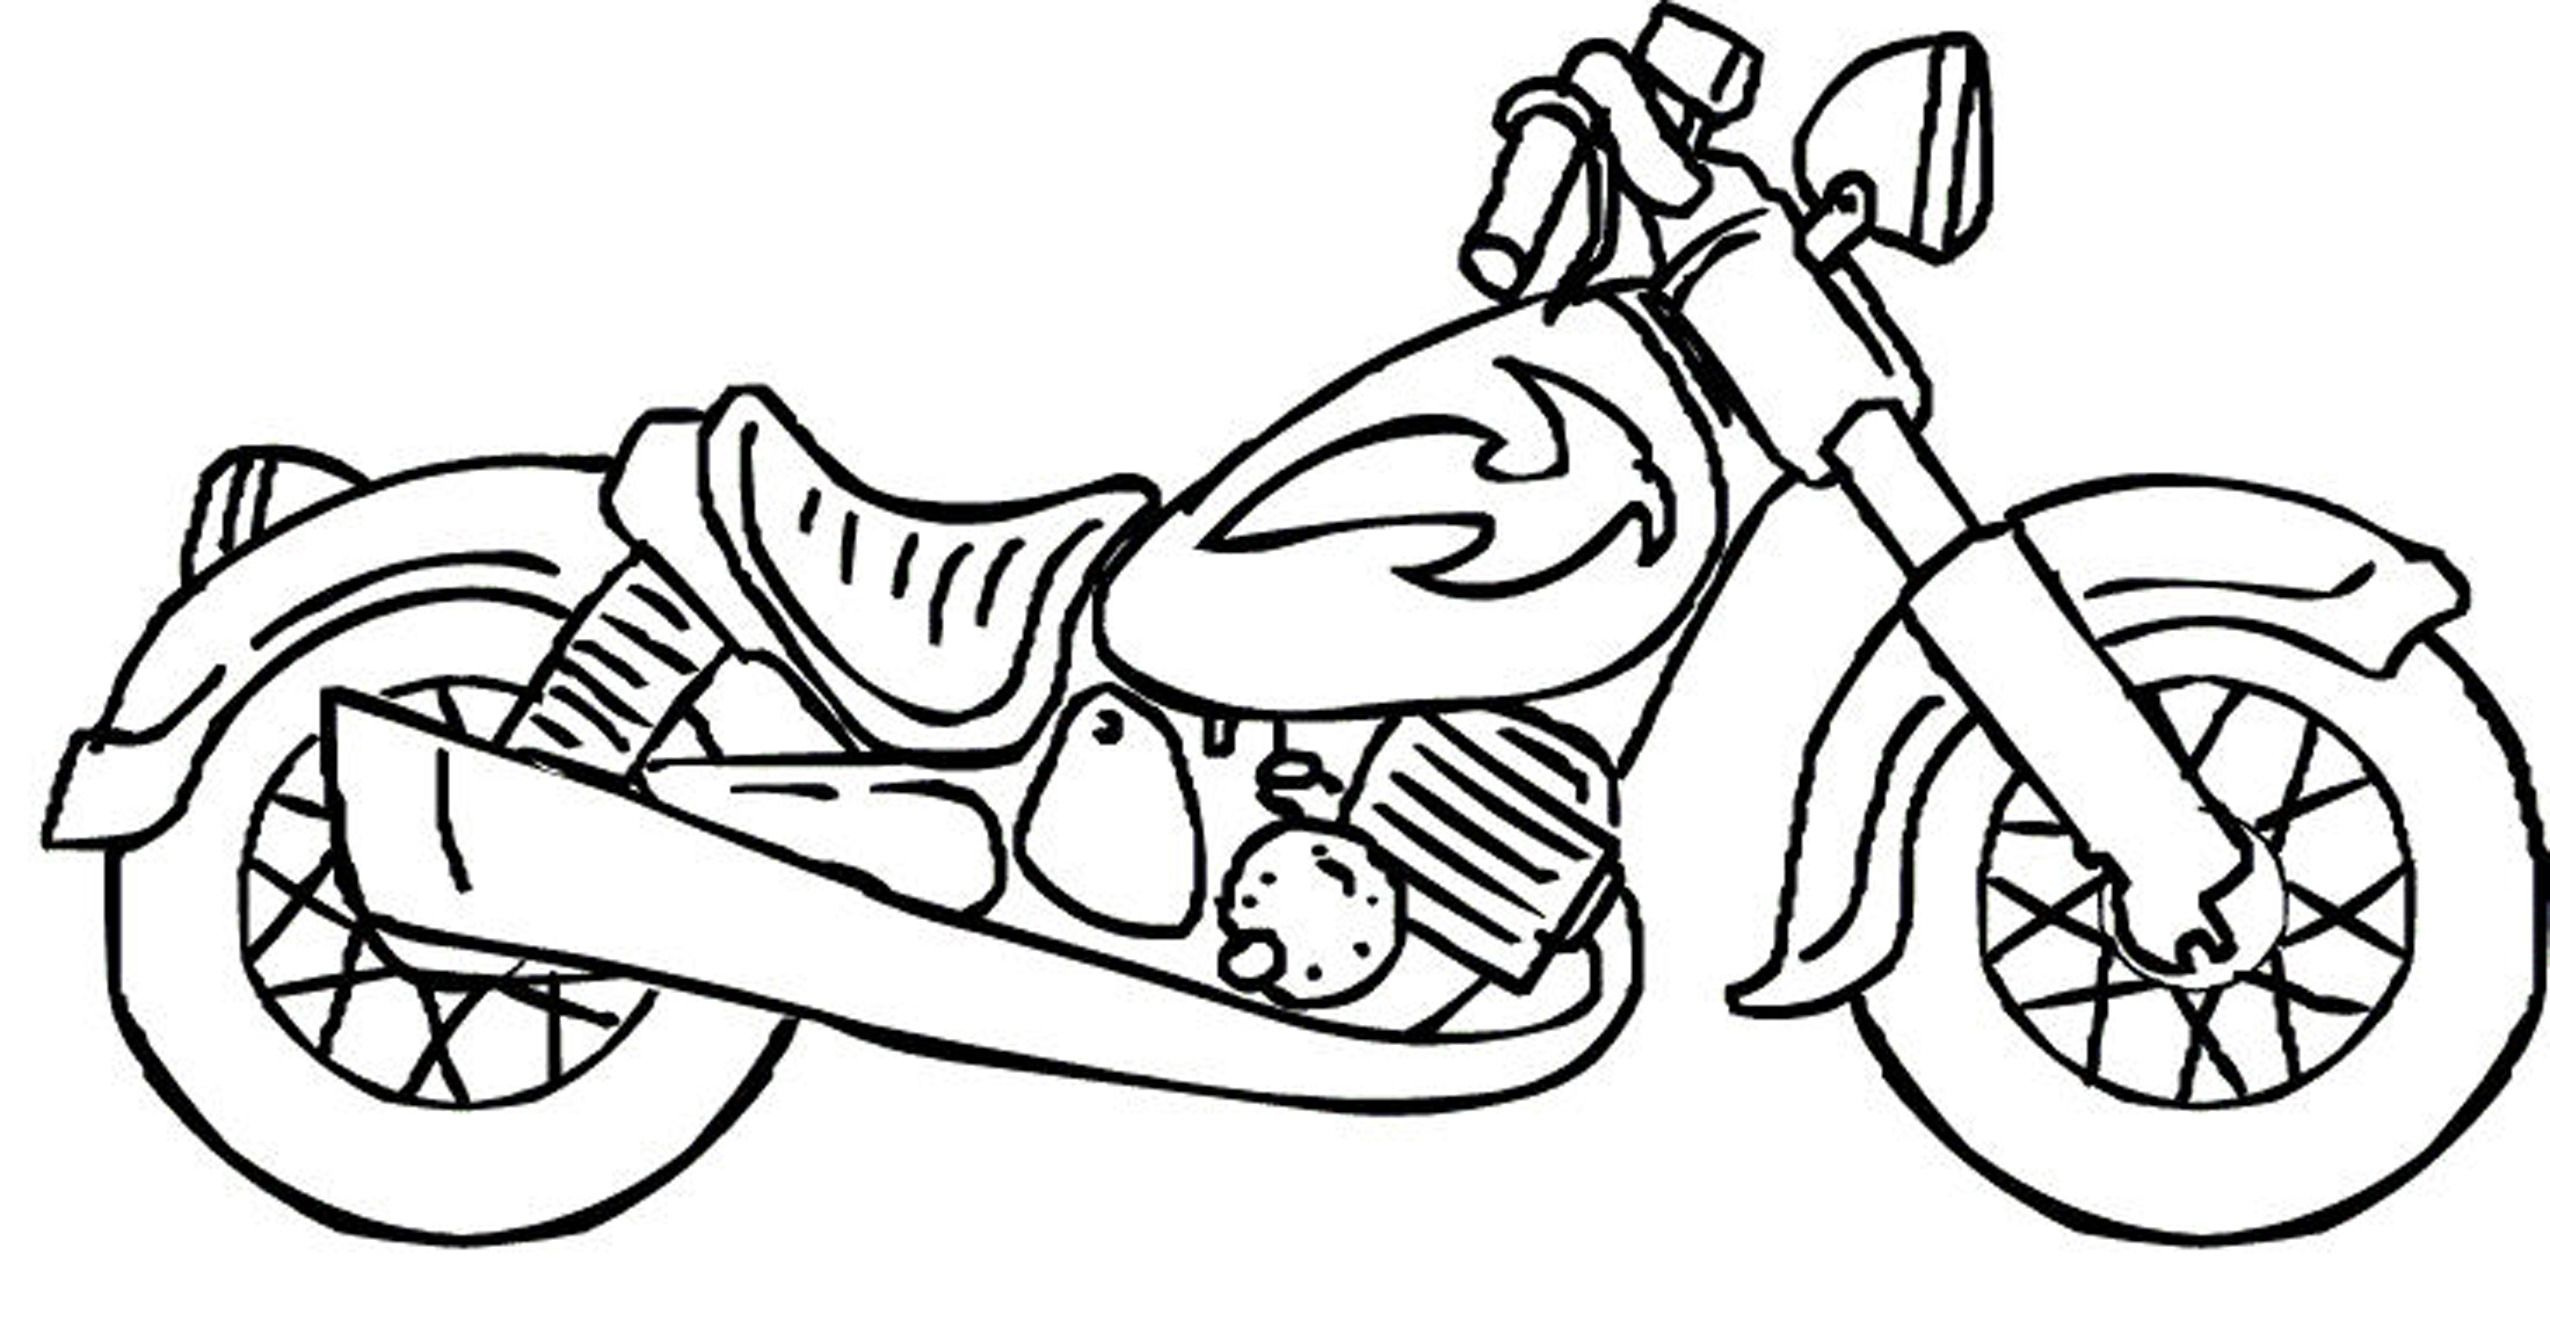 Motorcycle Coloring Pages Coloring Pages Phenomenal Motorcycle